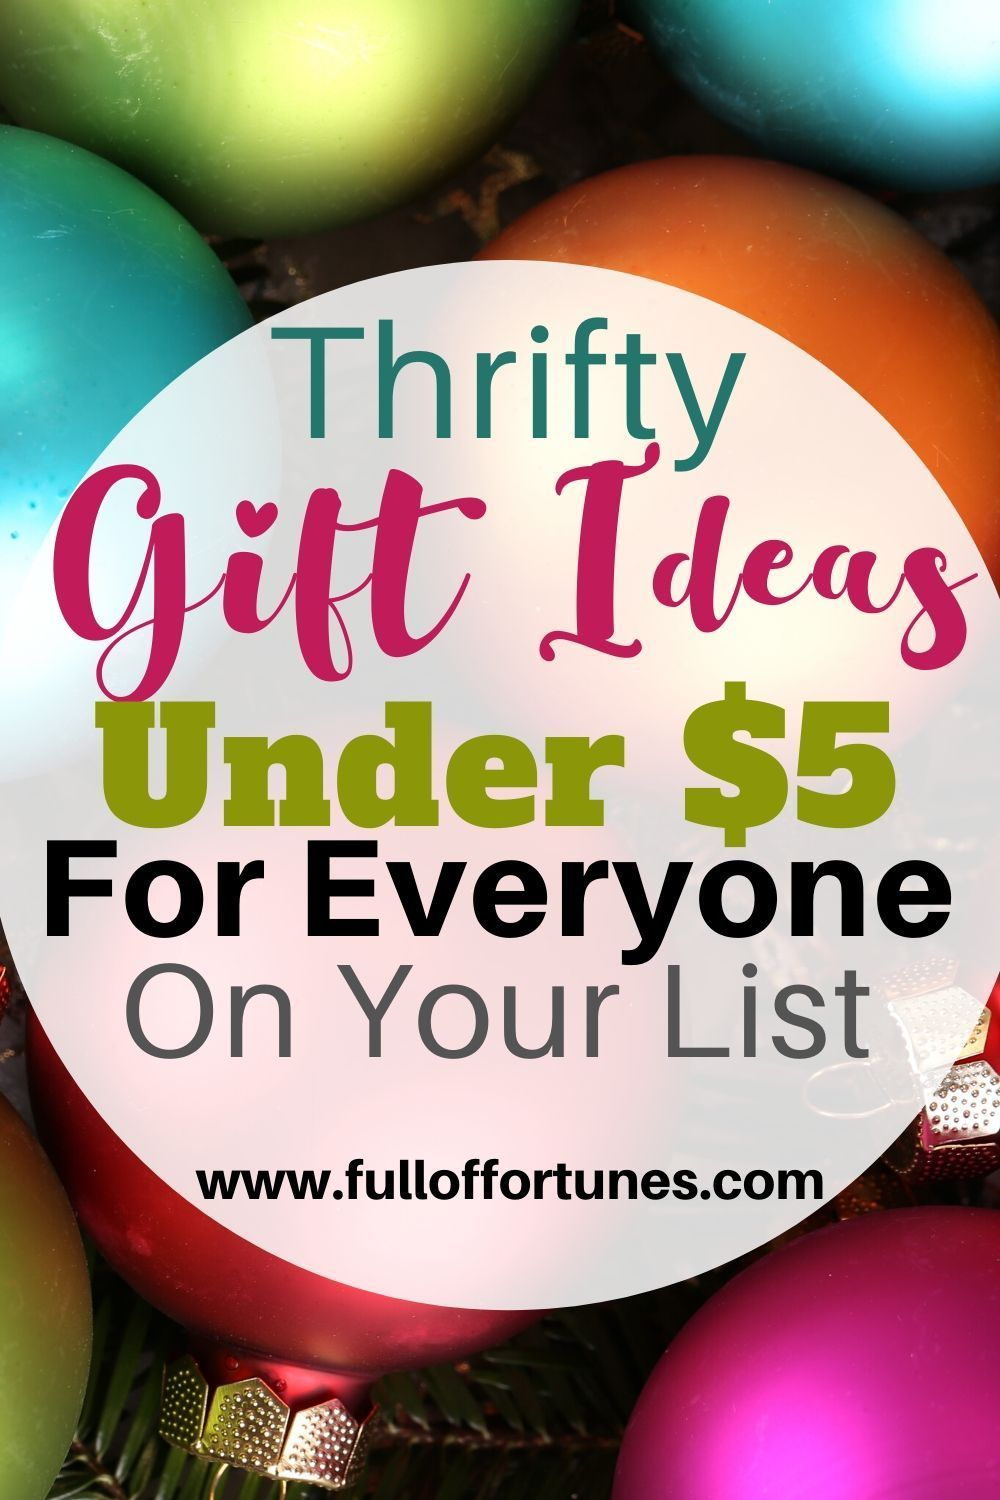 Affordable gift ideas under 5 for everyone on your list